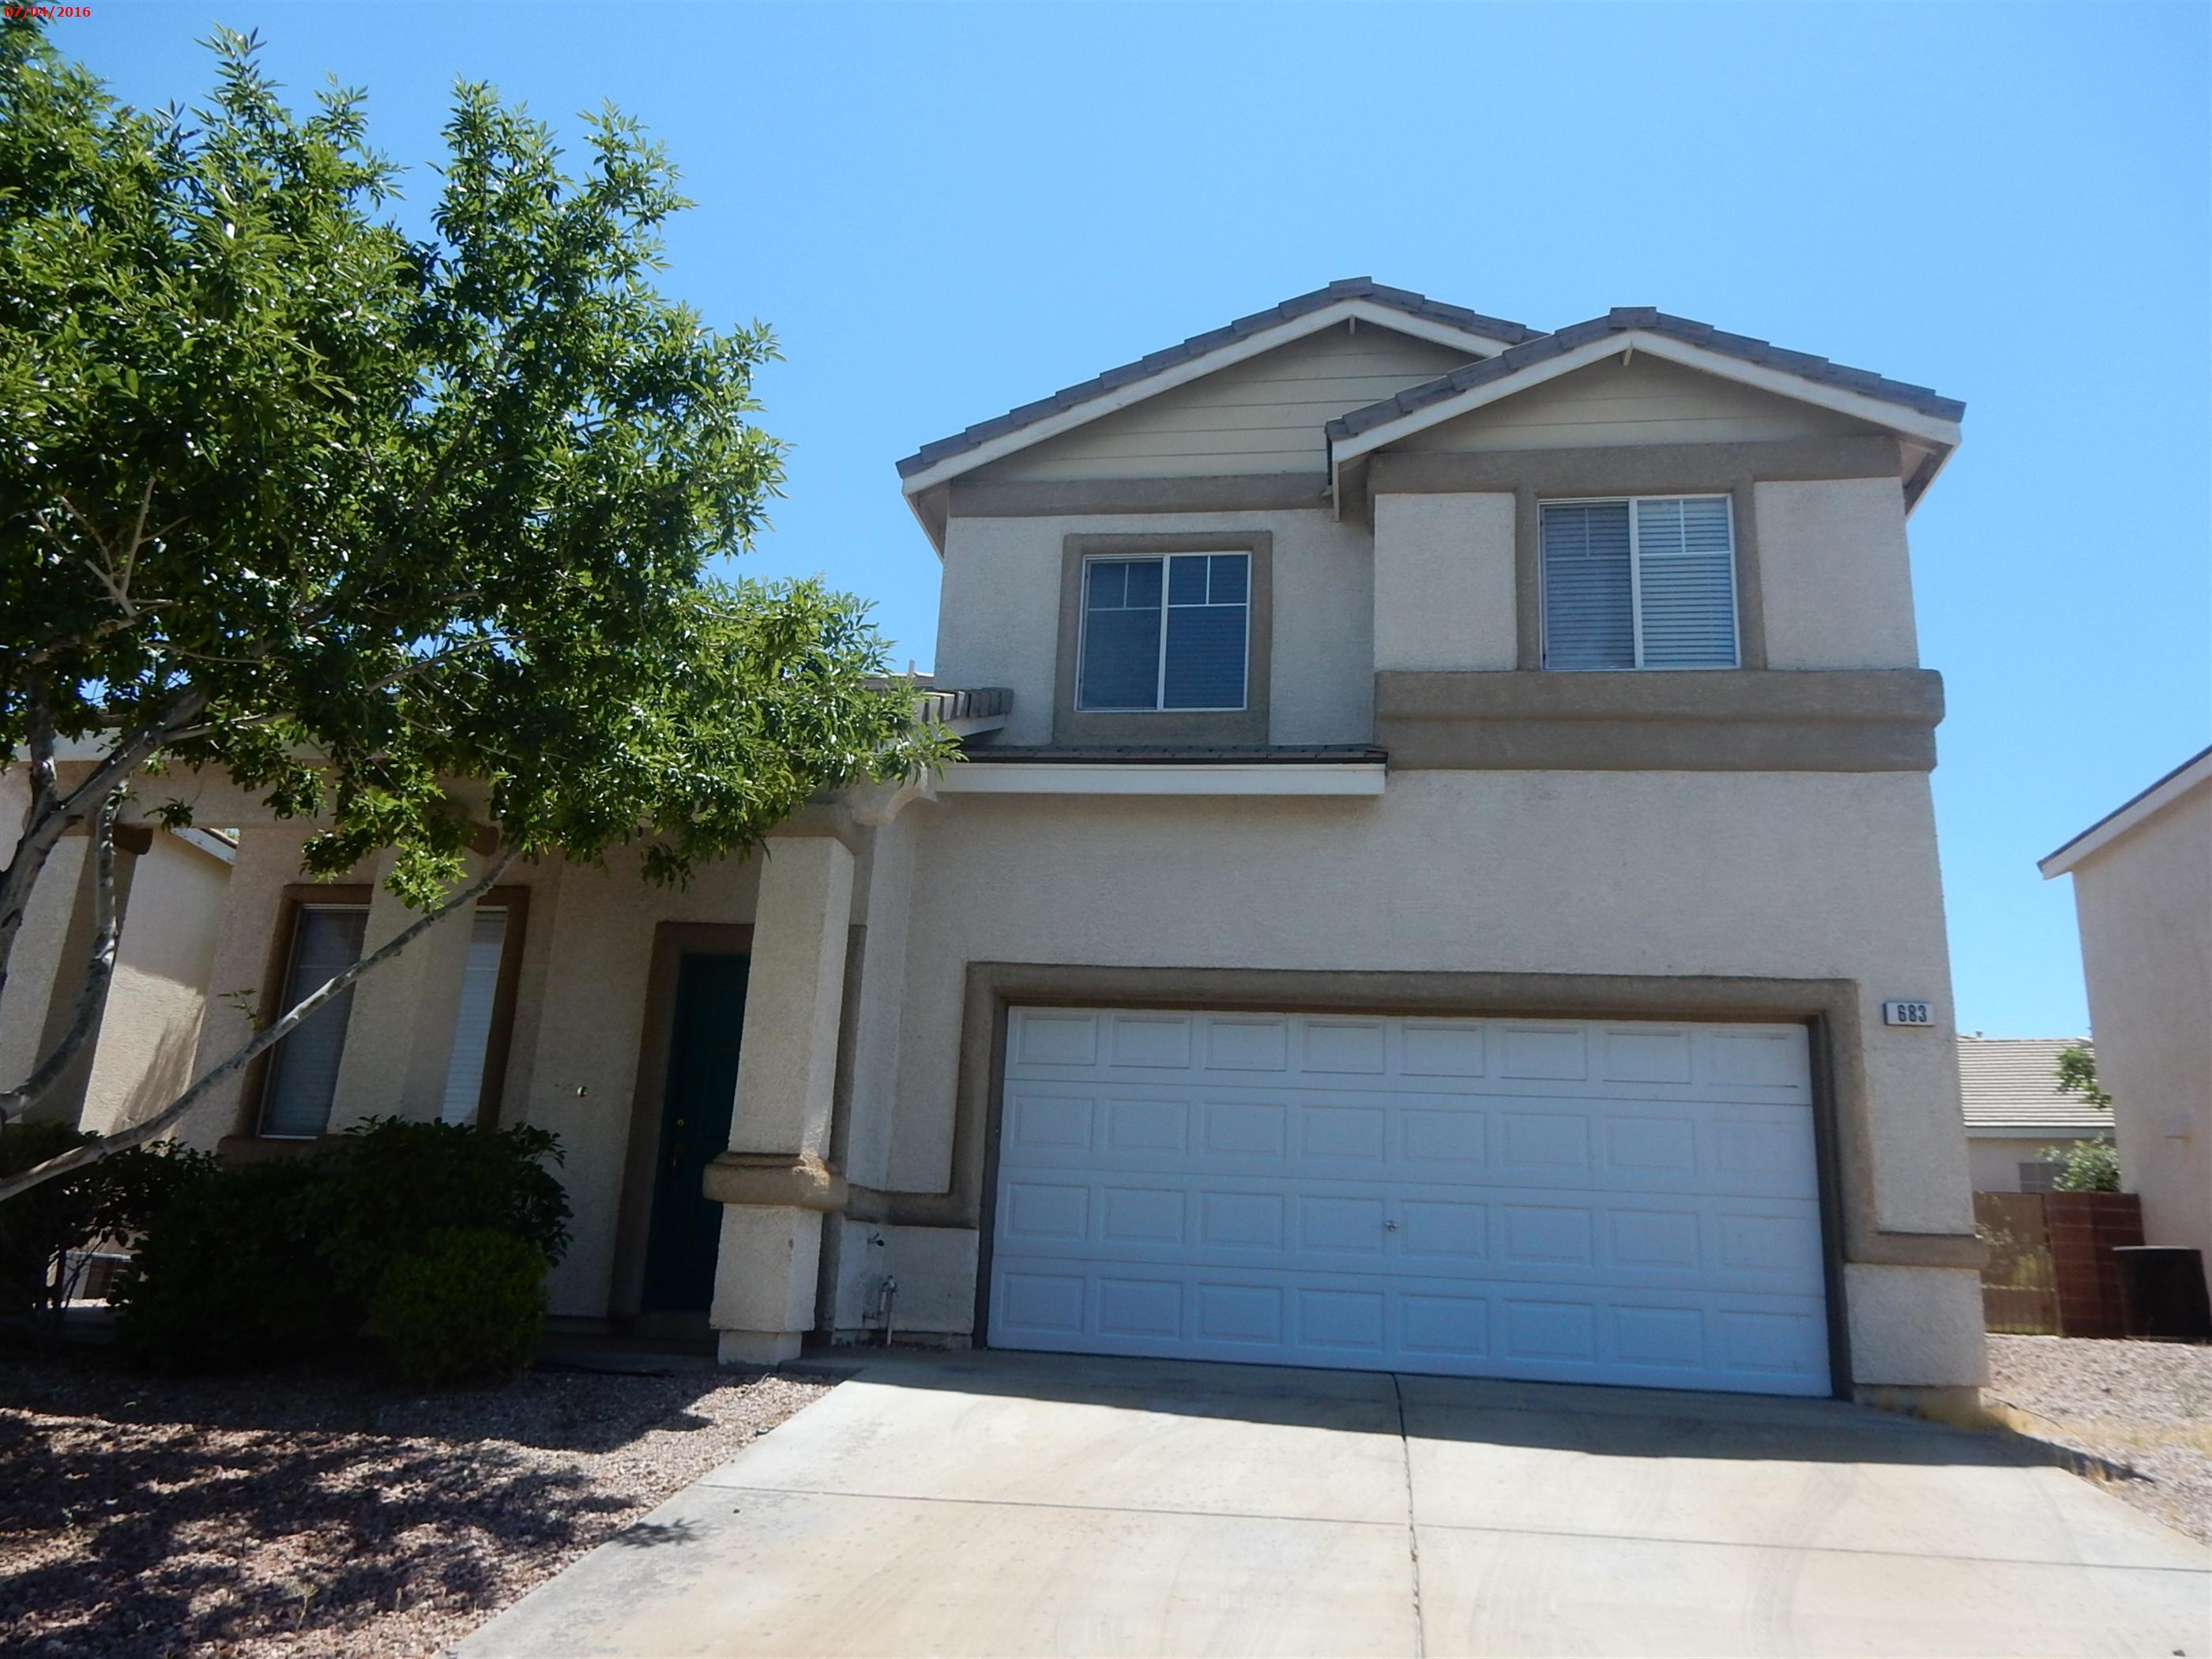 683 Pacific Cascades Dr, Henderson, NV 89012